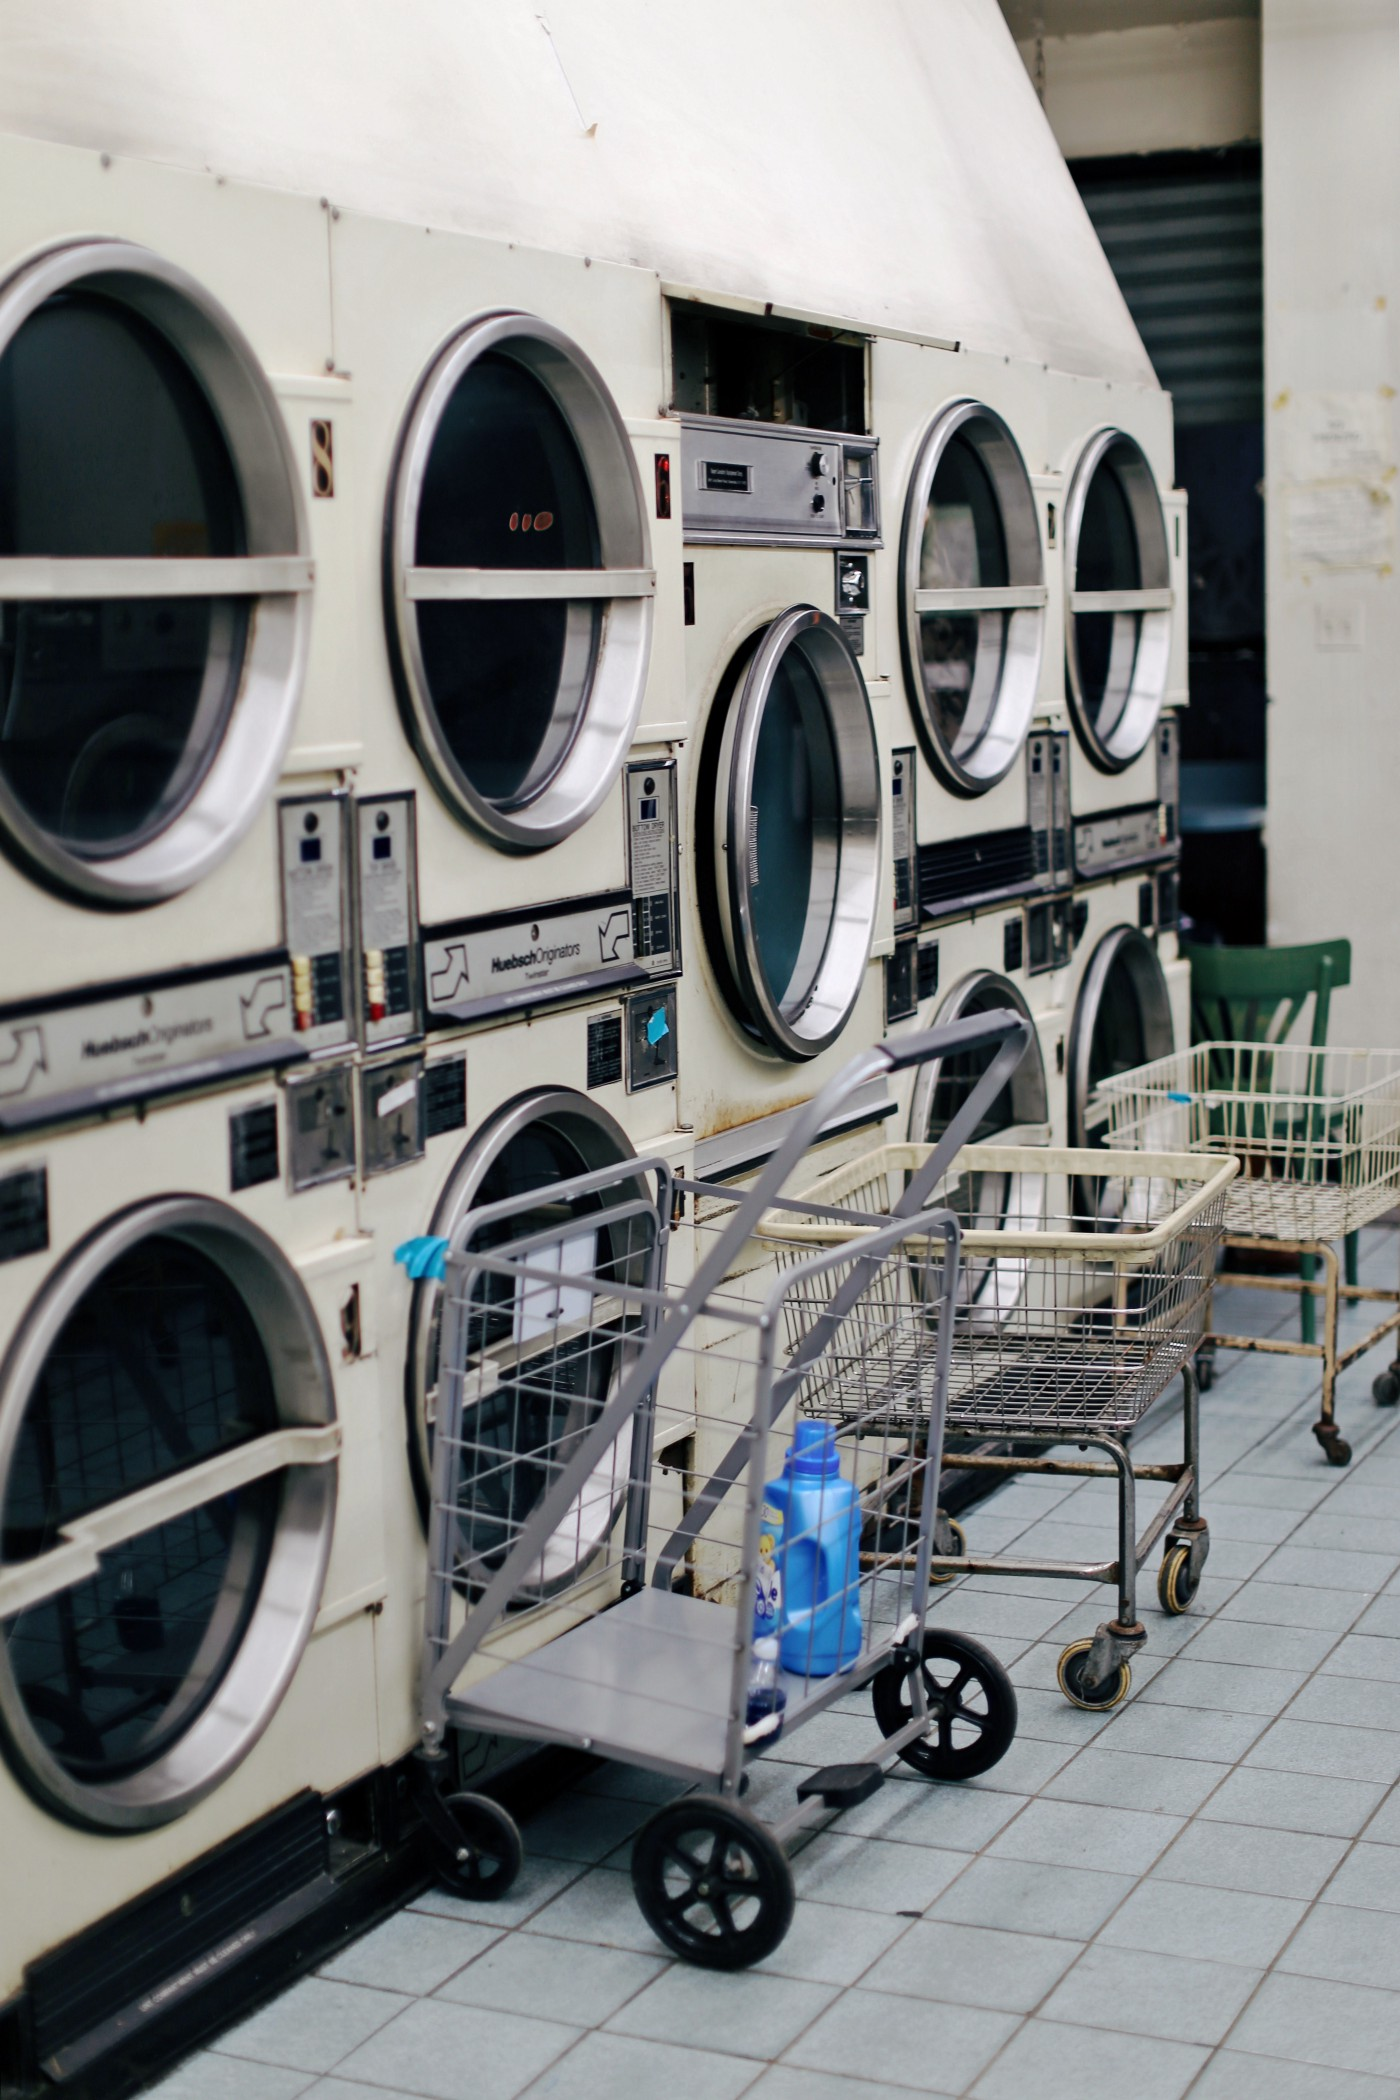 An old coin laundromat with three wire laundry carts